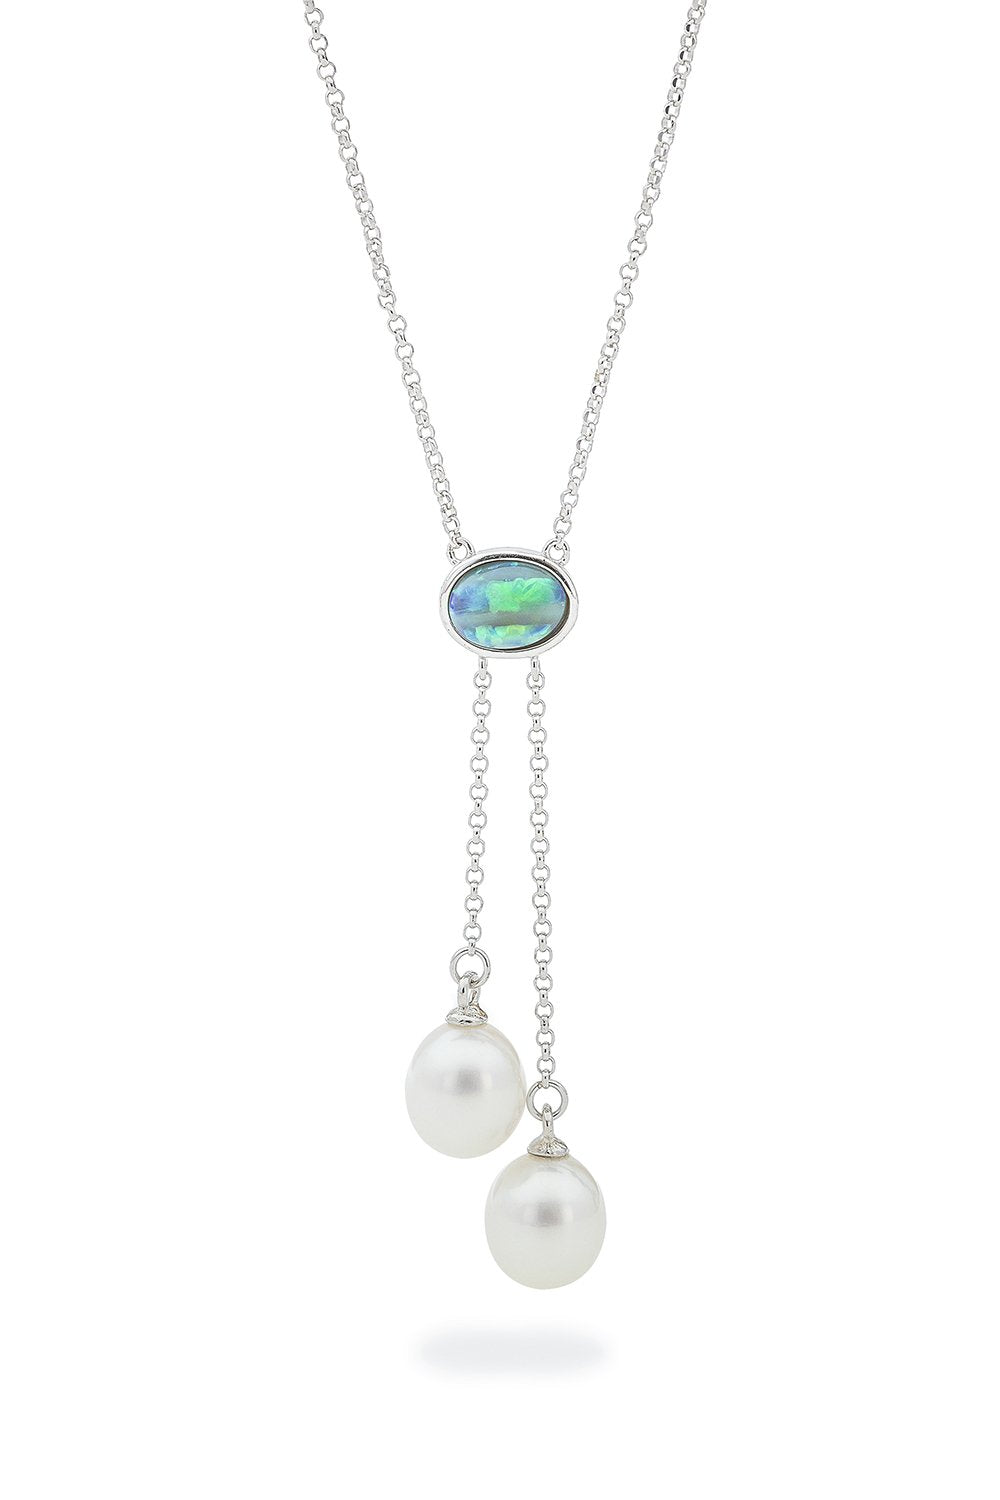 Ikecho Sterling Silver light solid opal/ FWP lariat 42cm+ ext.3cm